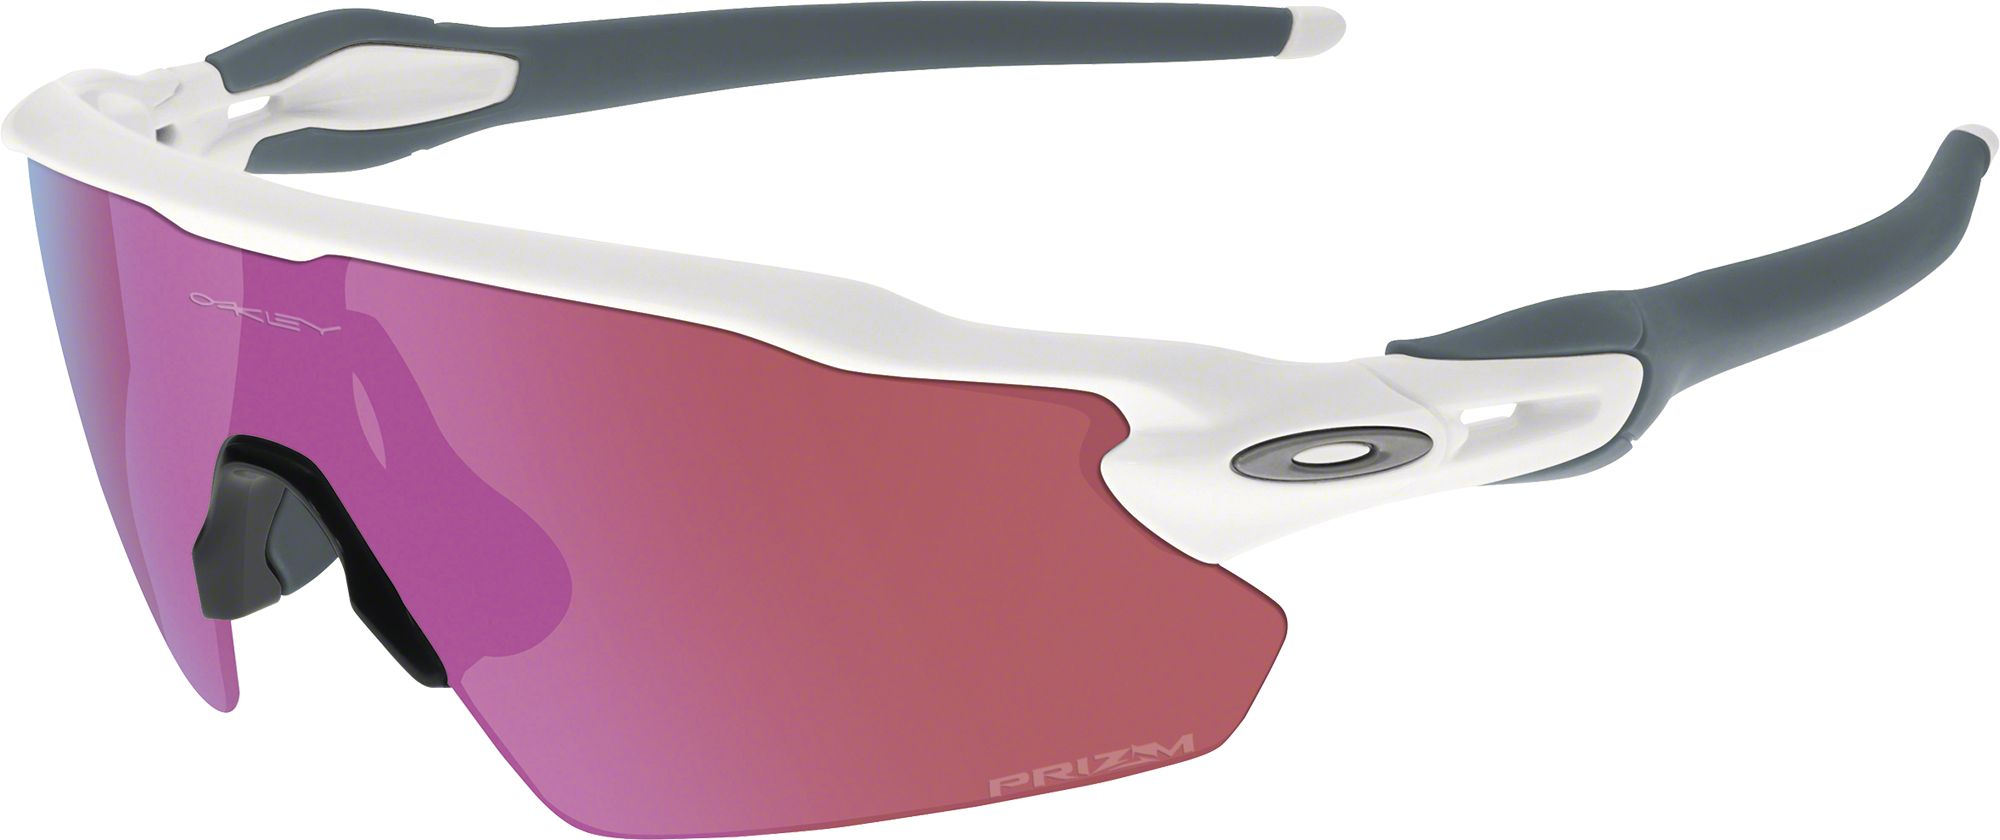 oakley outlet lancaster  product image oakley radar ev pitch baseball sunglasses